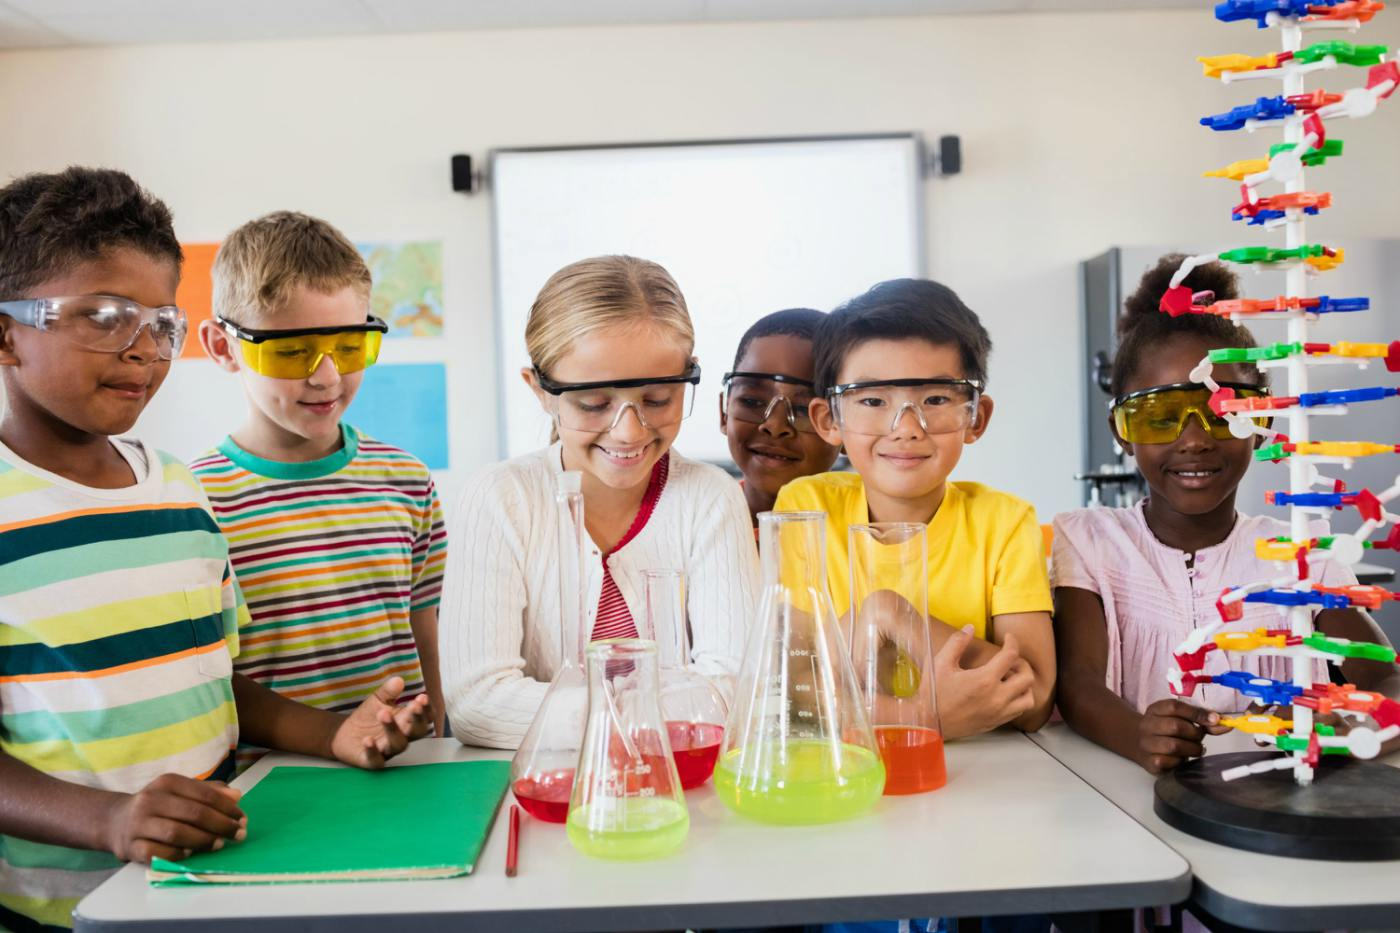 VISION   A community where the educational system and private enterprise prepare their students to shape the scientific advances and foster the artistic renaissance of the 21st century.